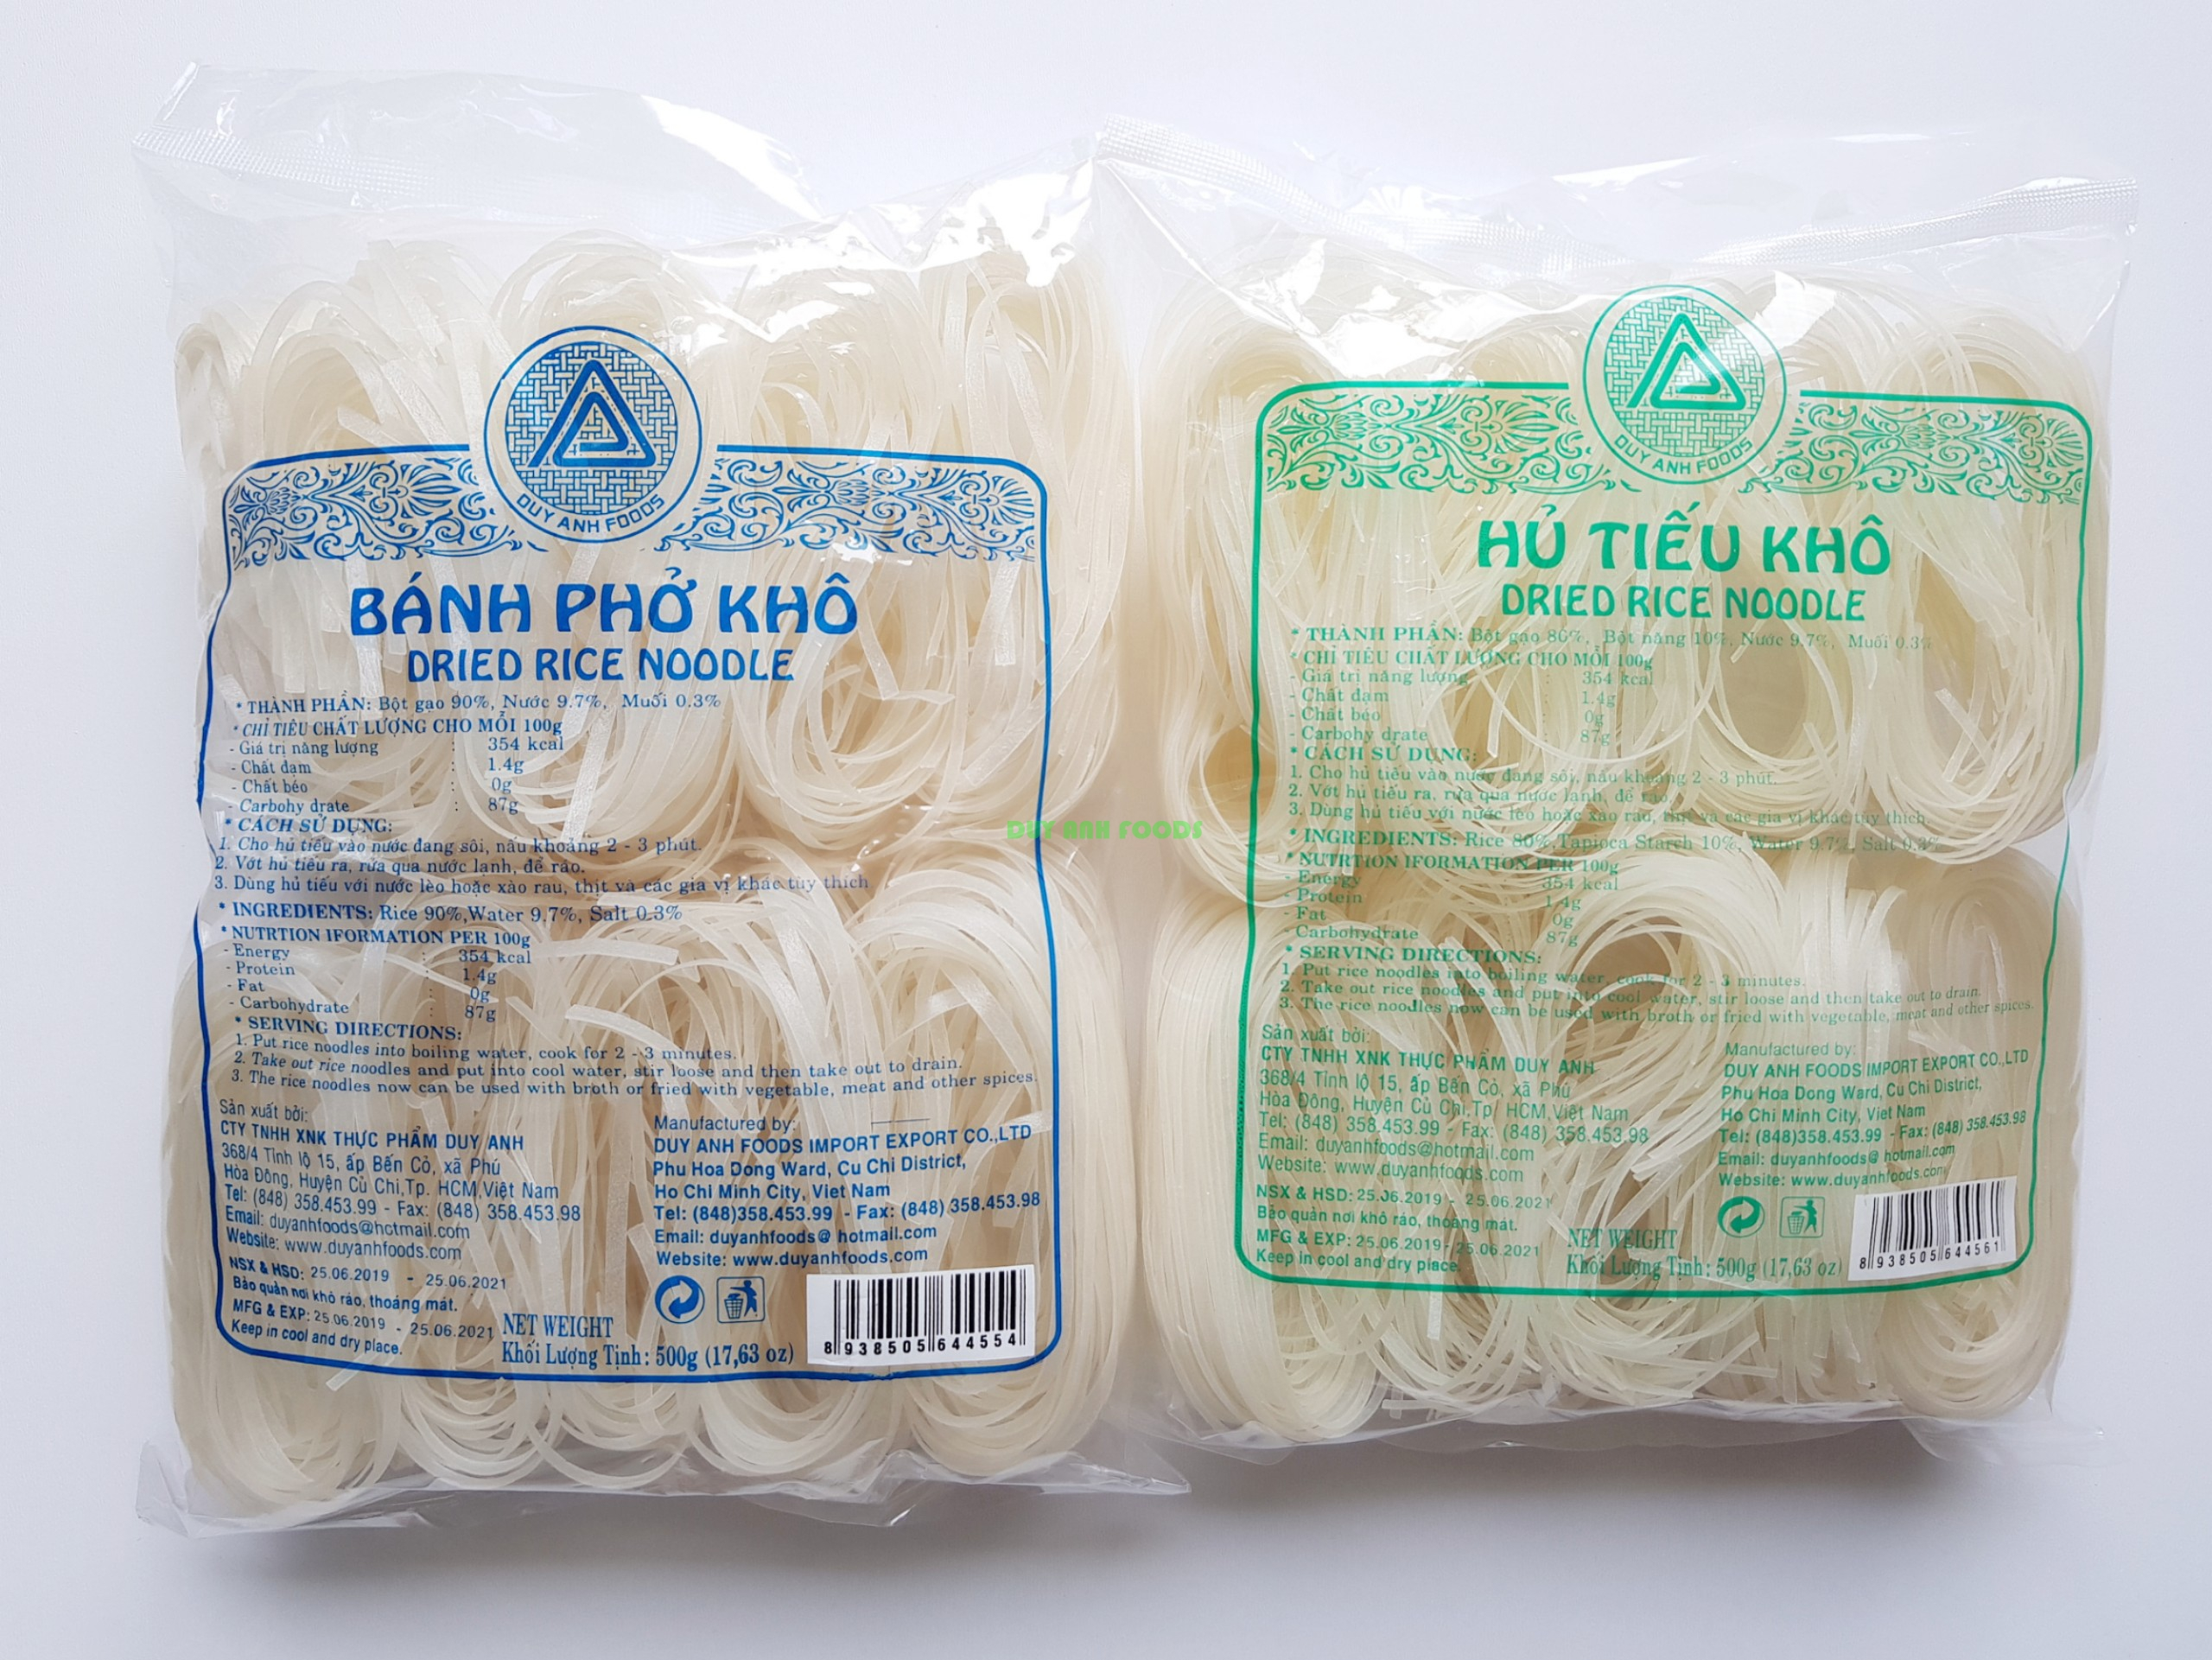 DRIED RICE NOODLE 2mm, 4mm- DUY ANH